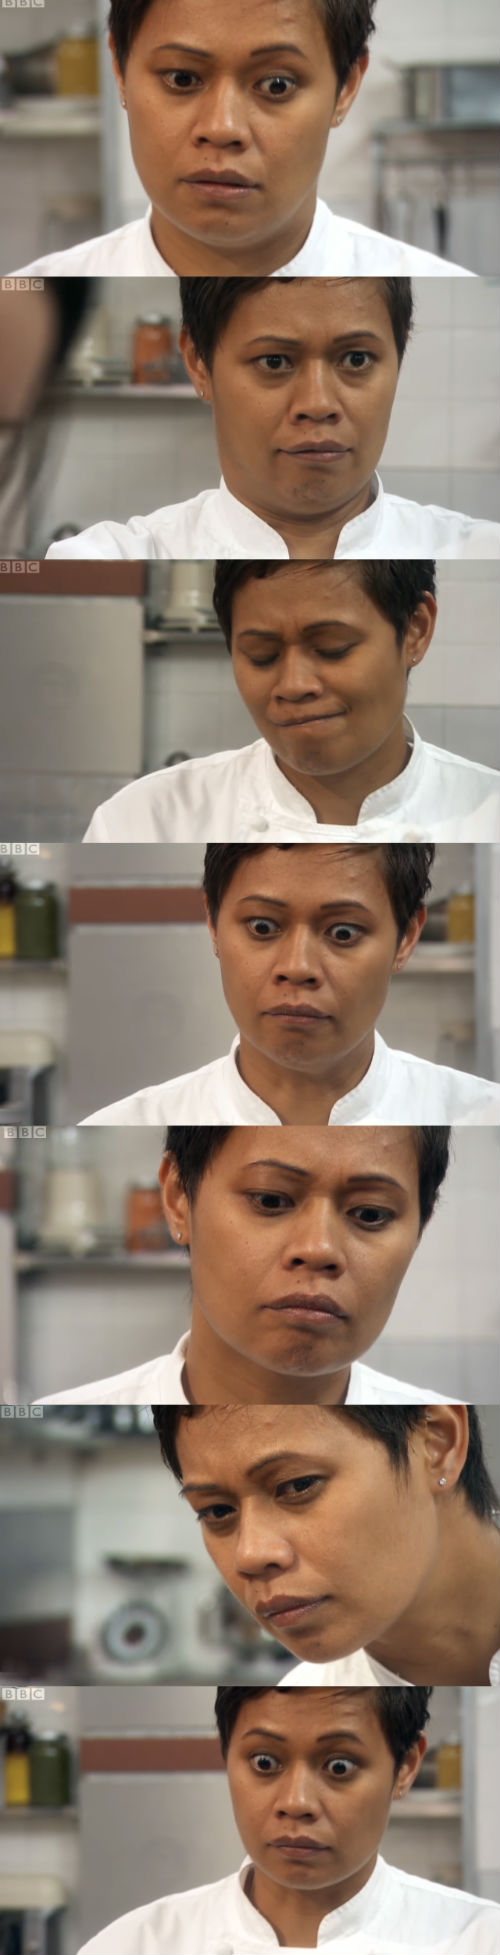 Monica Galetti's absurd reaction shots